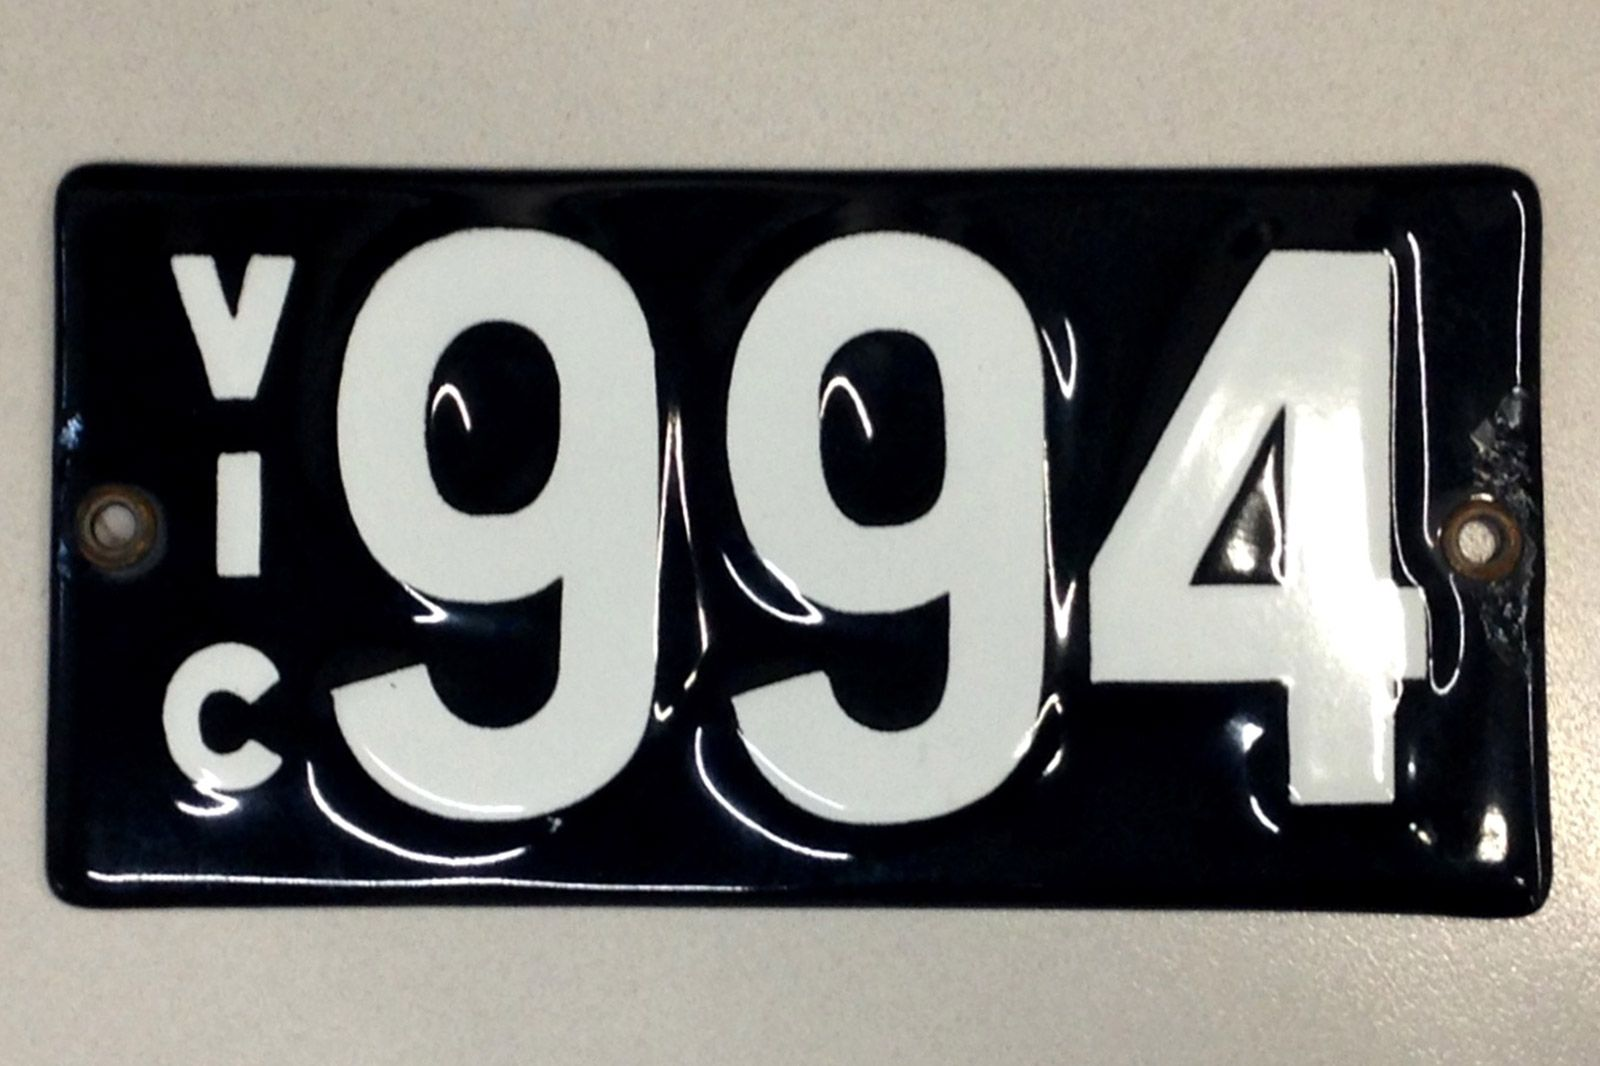 Number Plates - Victorian Numerical Number Plates '994'